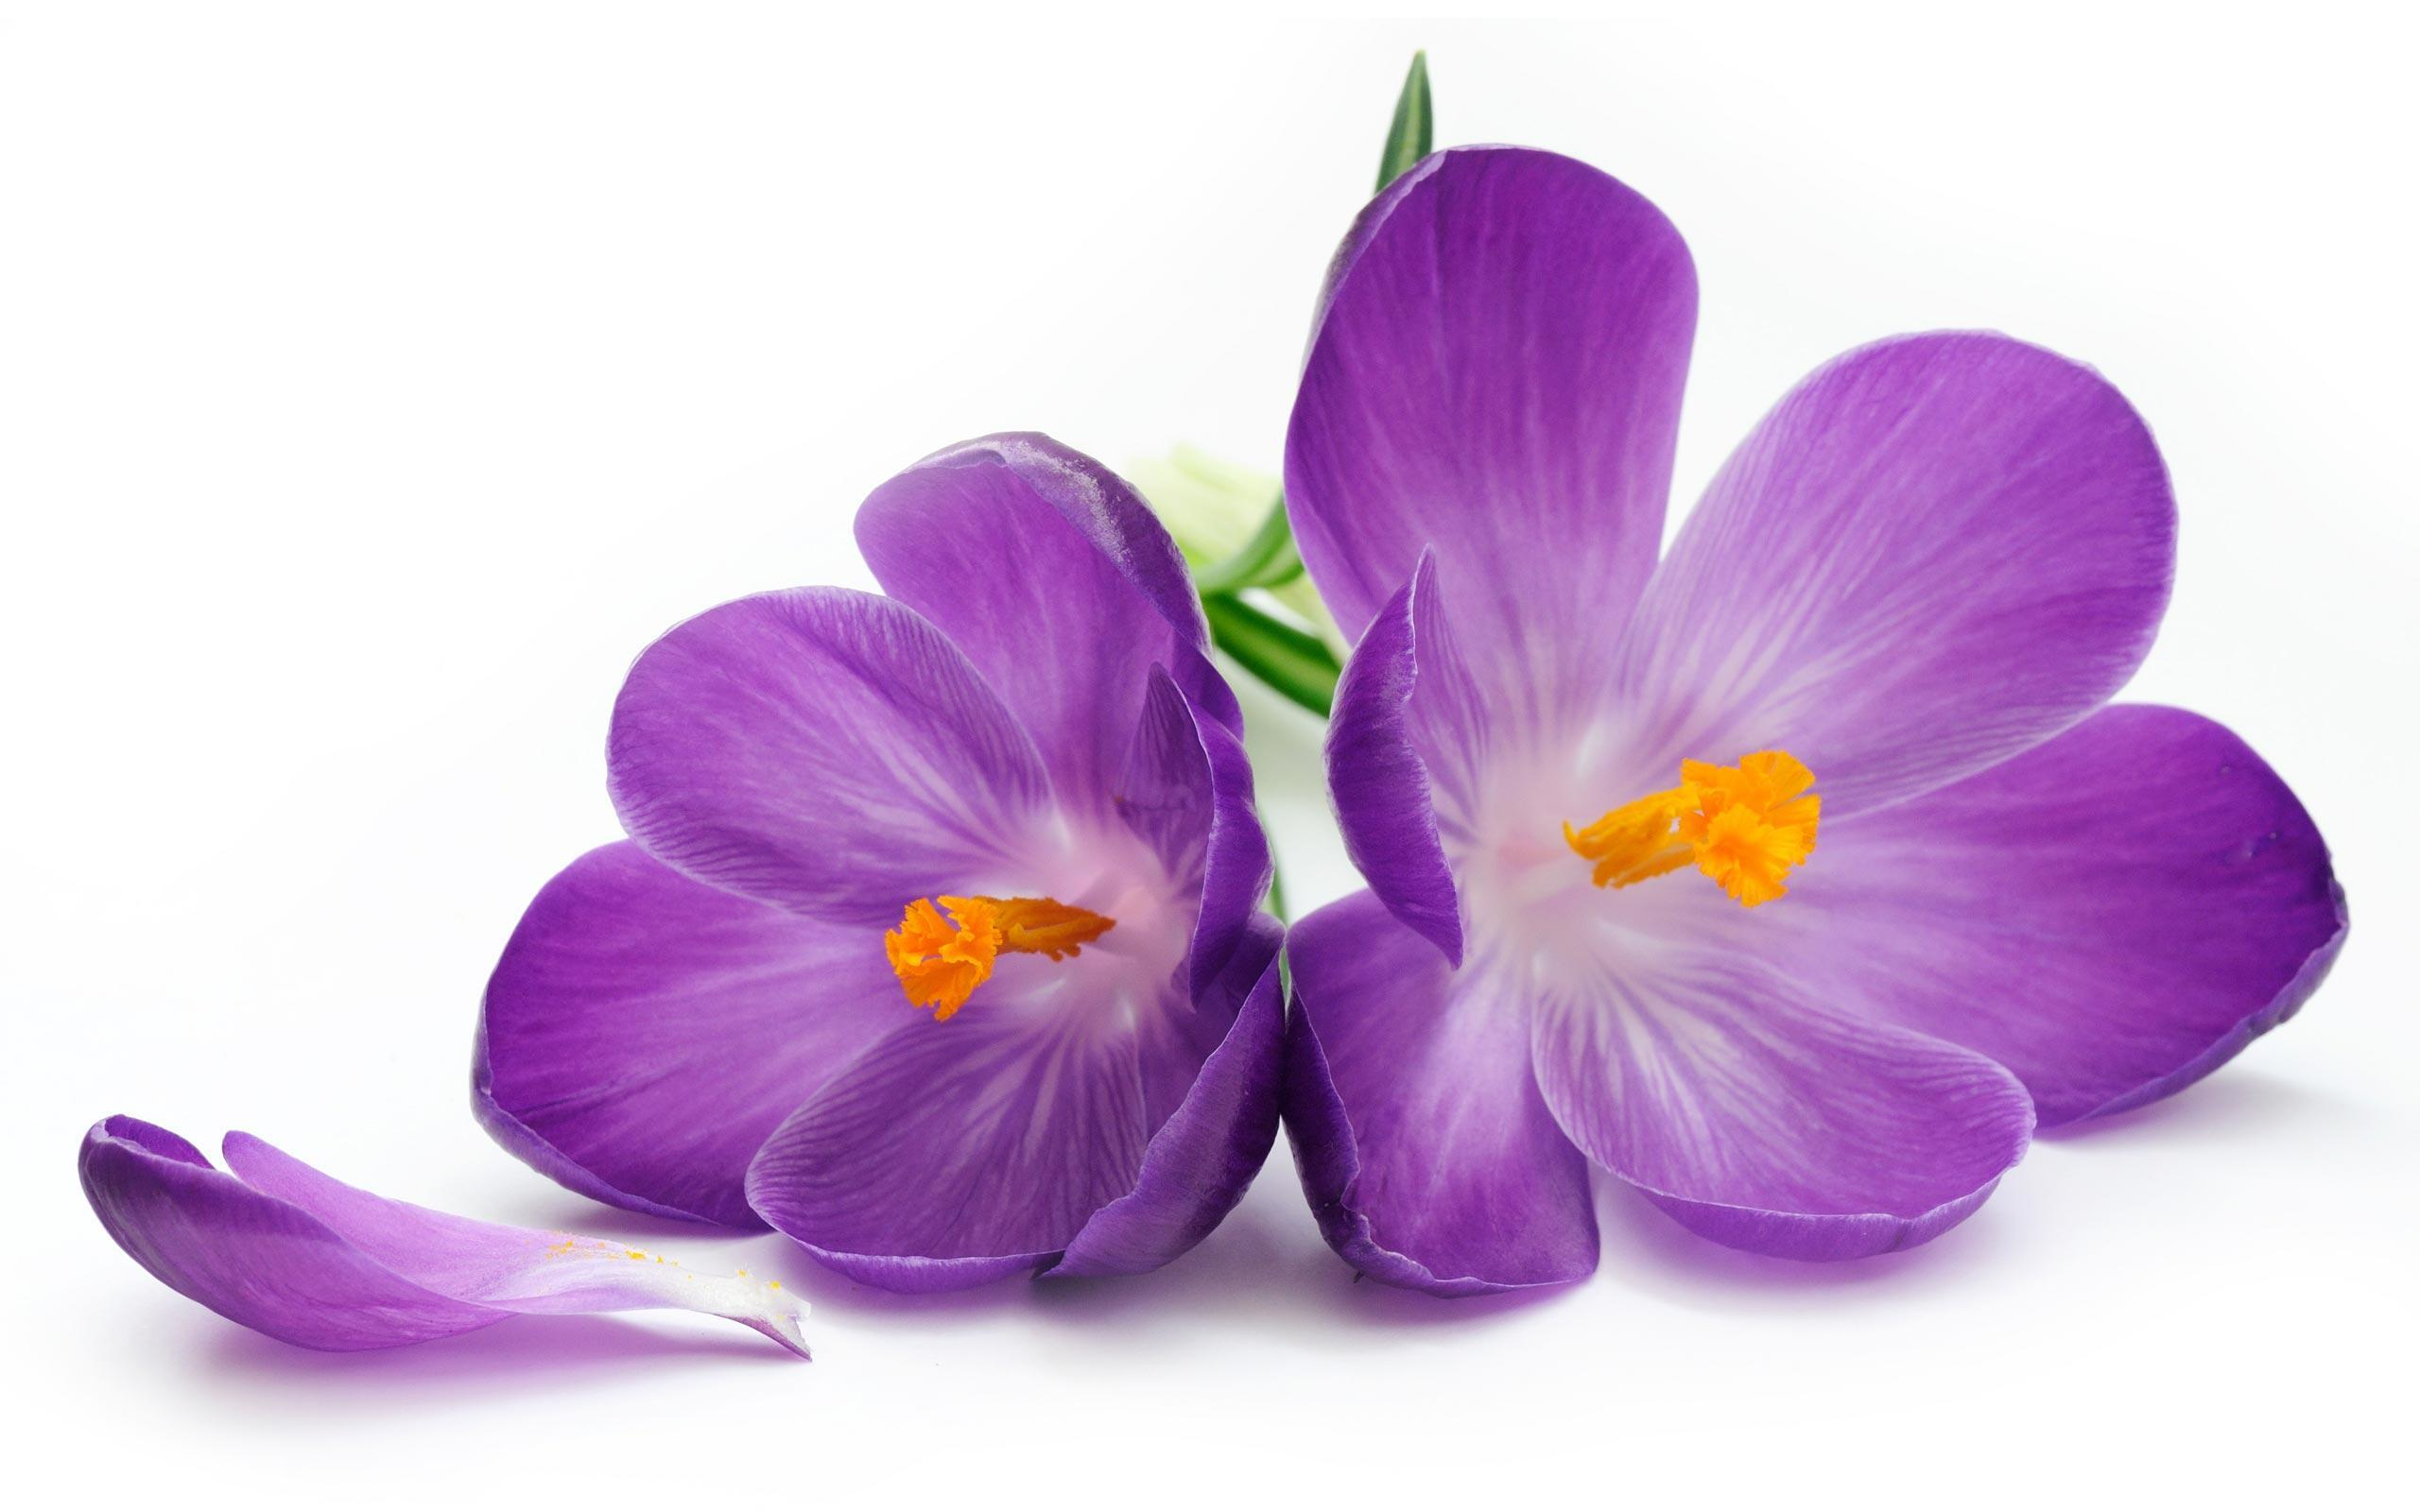 purple flowers wallpapers  wallpaper cave, Natural flower